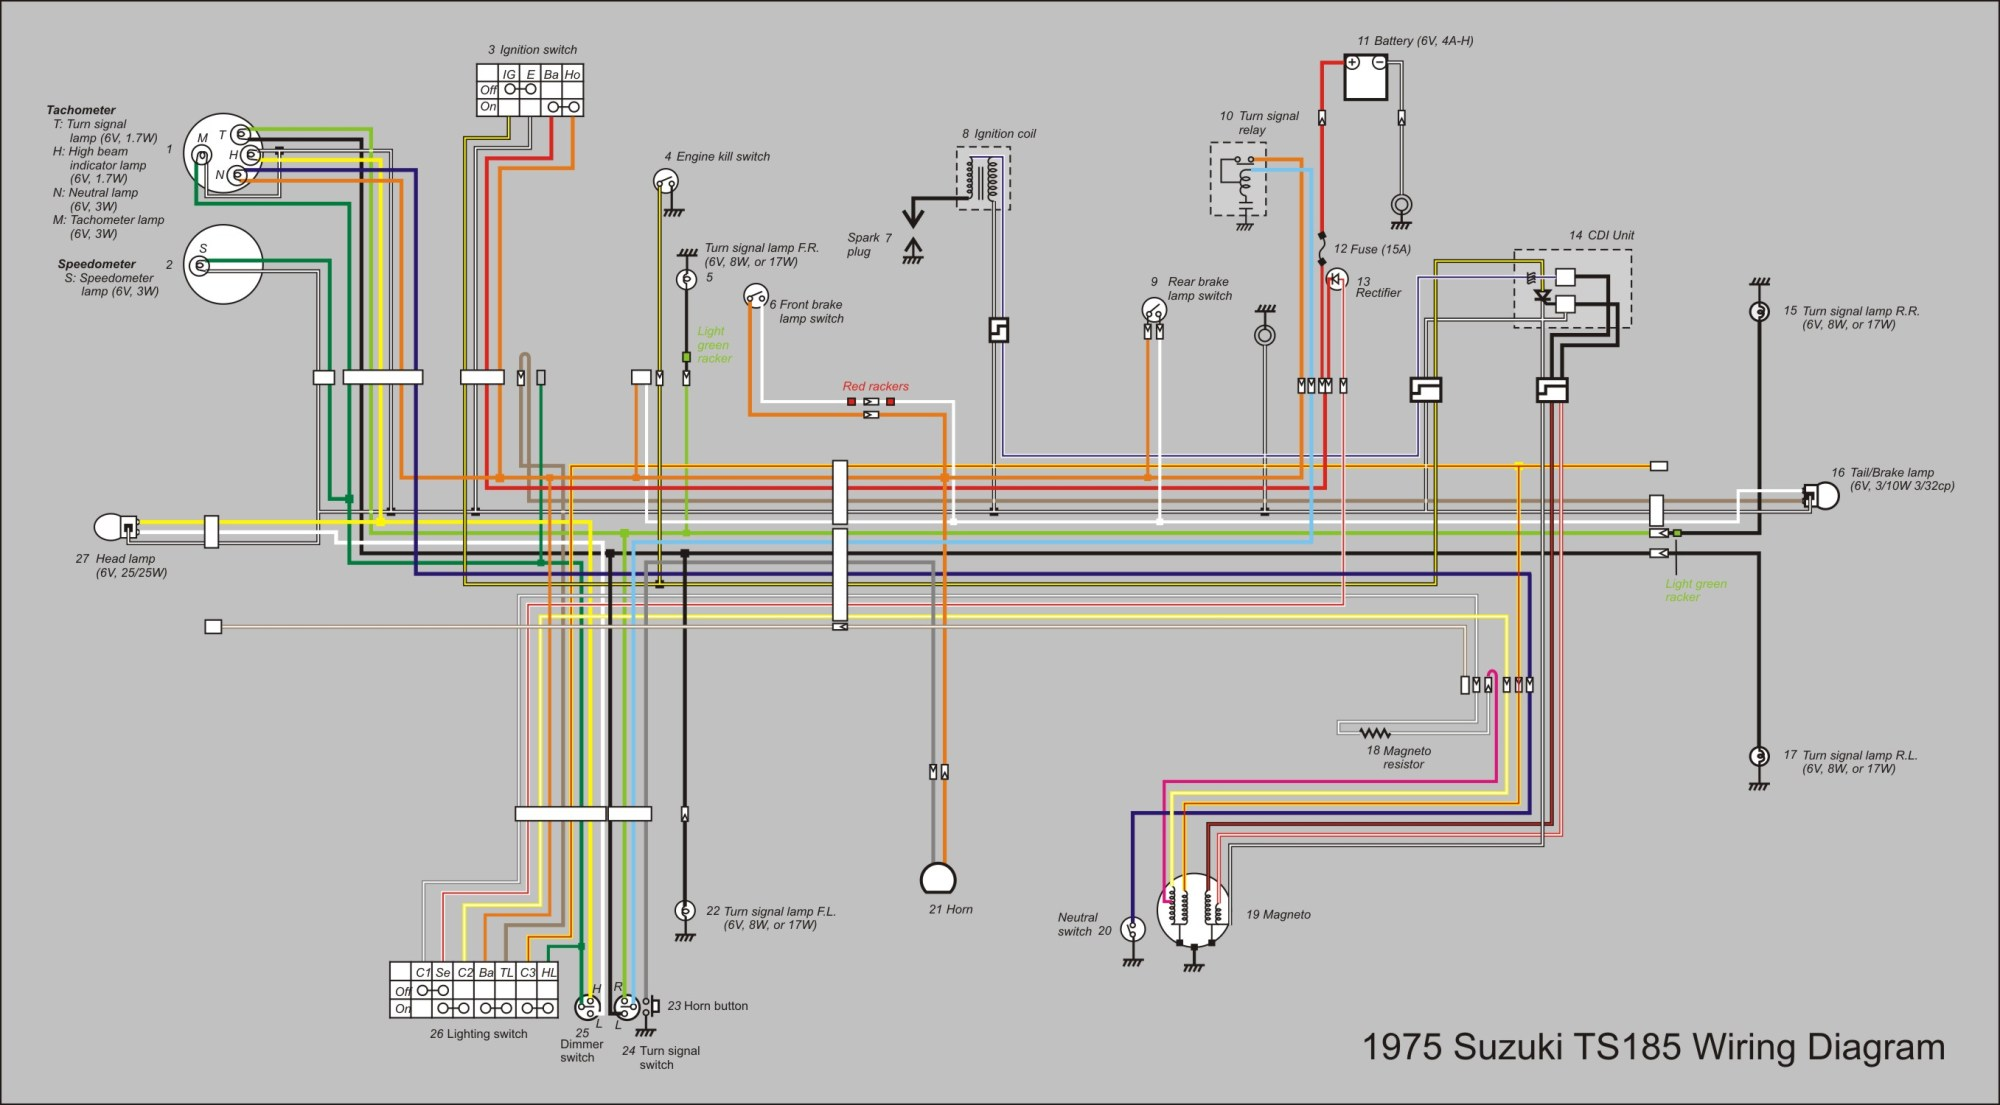 hight resolution of file ts185 wiring diagram new jpg wikimedia commonsfile ts185 wiring diagram new jpg